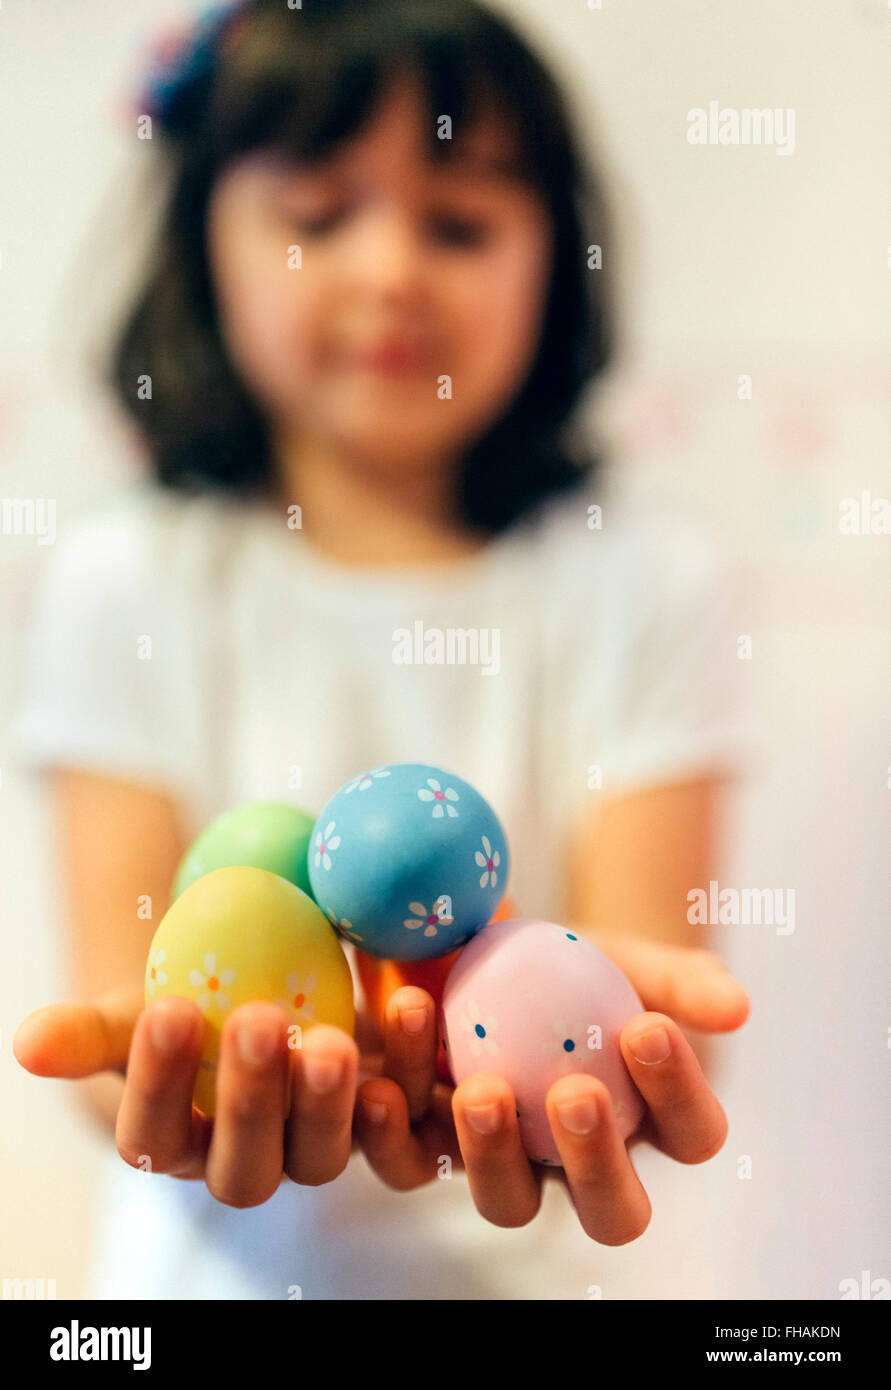 Girl's hands holding painted Easter eggs - Stock Image